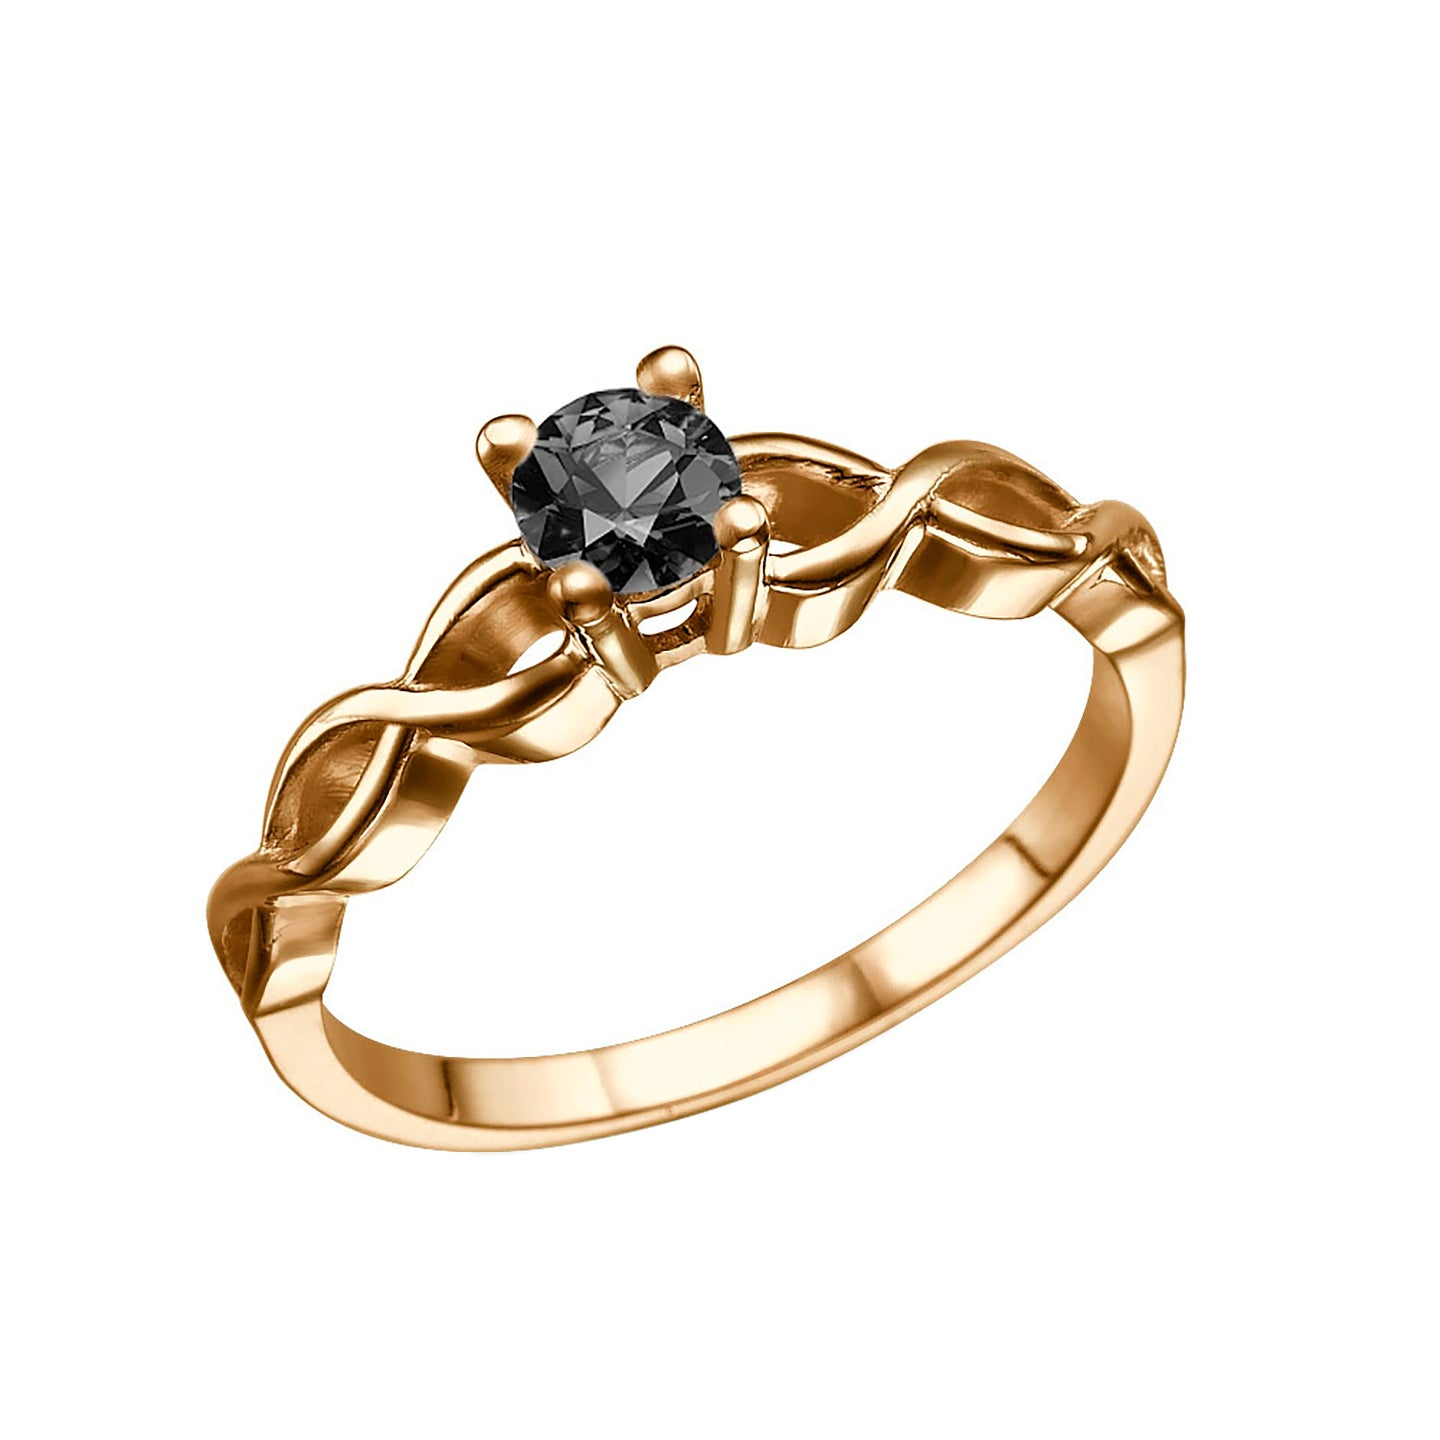 0.5 Carat 14K Rose Gold Black Diamond